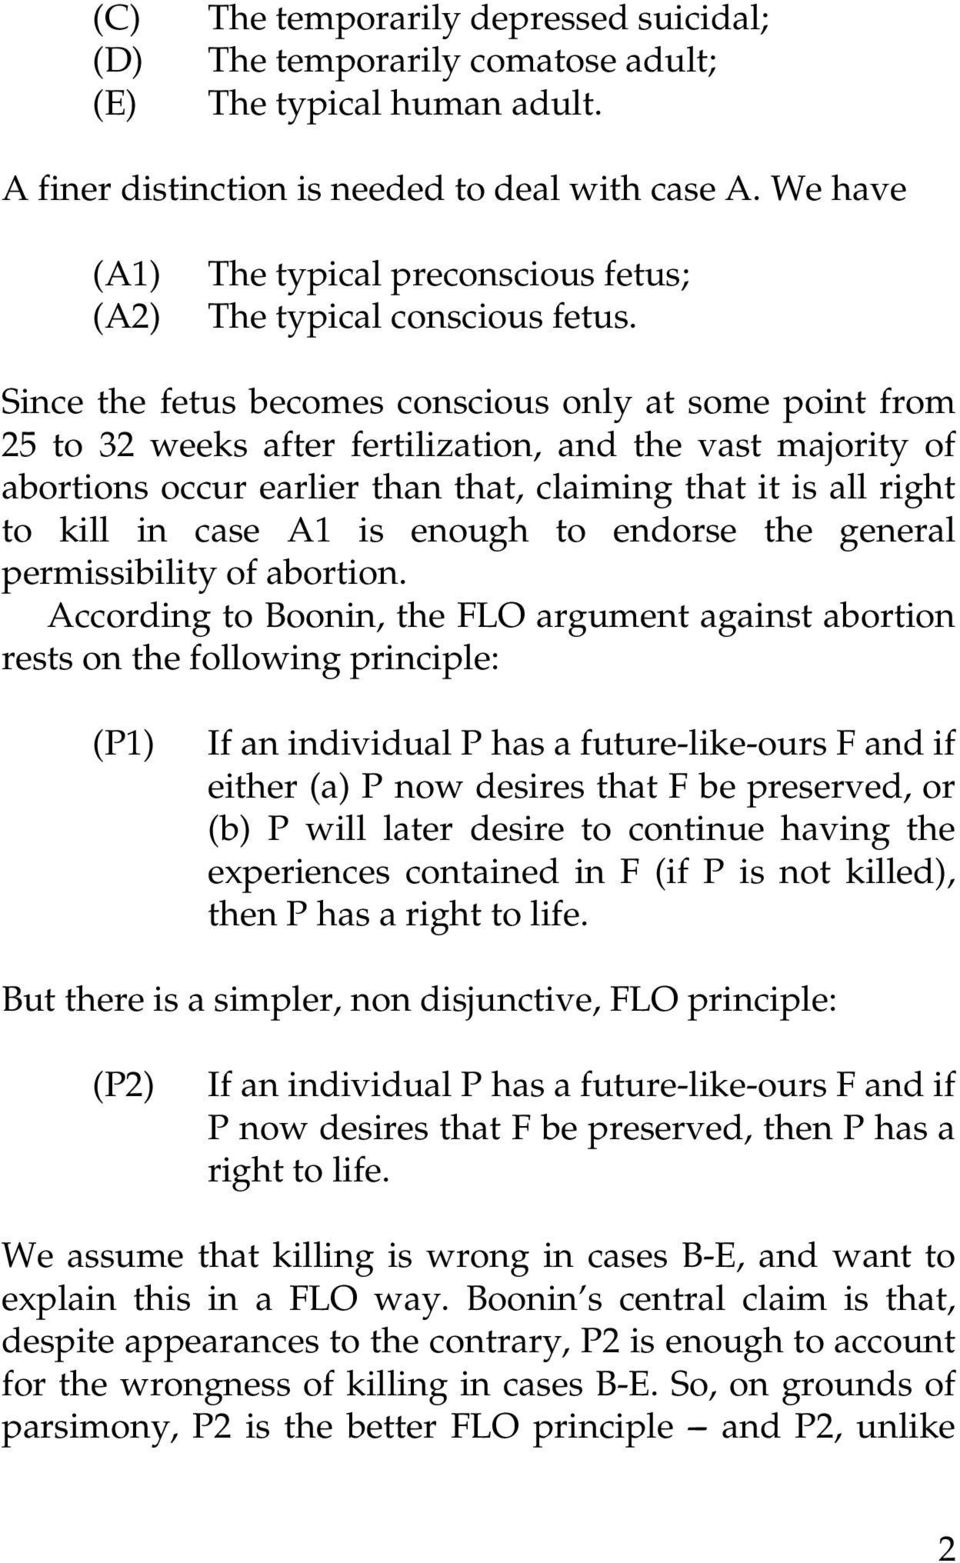 Since the fetus becomes conscious only at some point from 25 to 32 weeks after fertilization, and the vast majority of abortions occur earlier than that, claiming that it is all right to kill in case